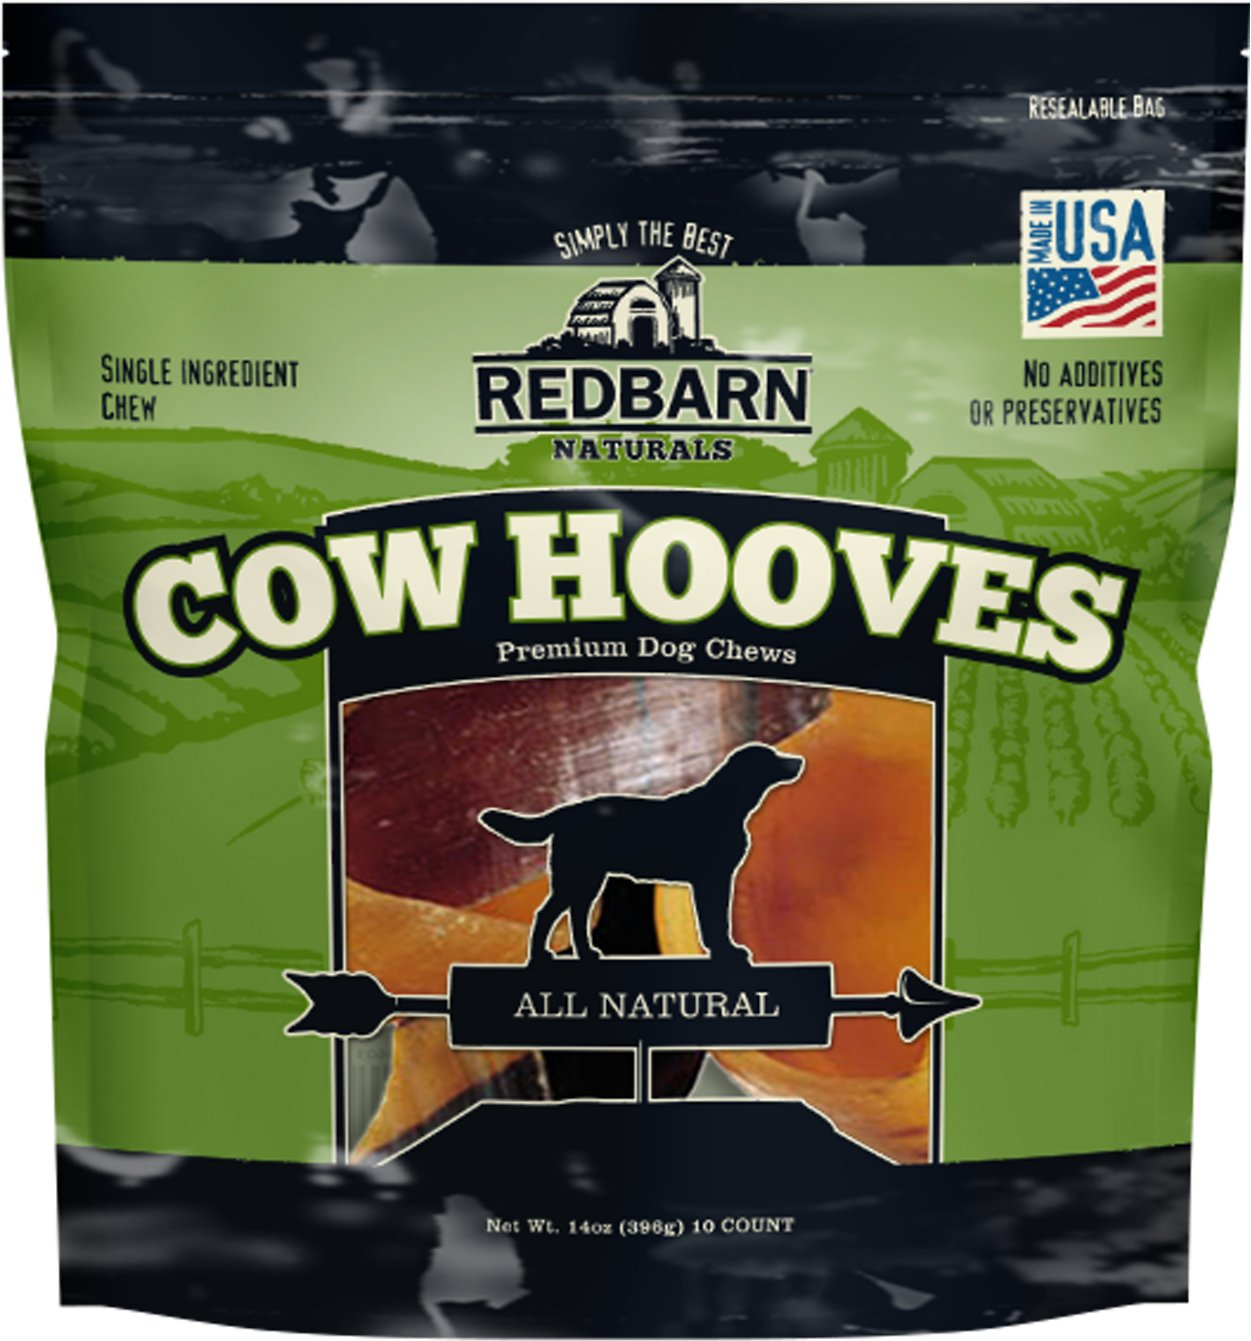 Redbarn Naturals Cow Hooves Dog Treats, 1-count